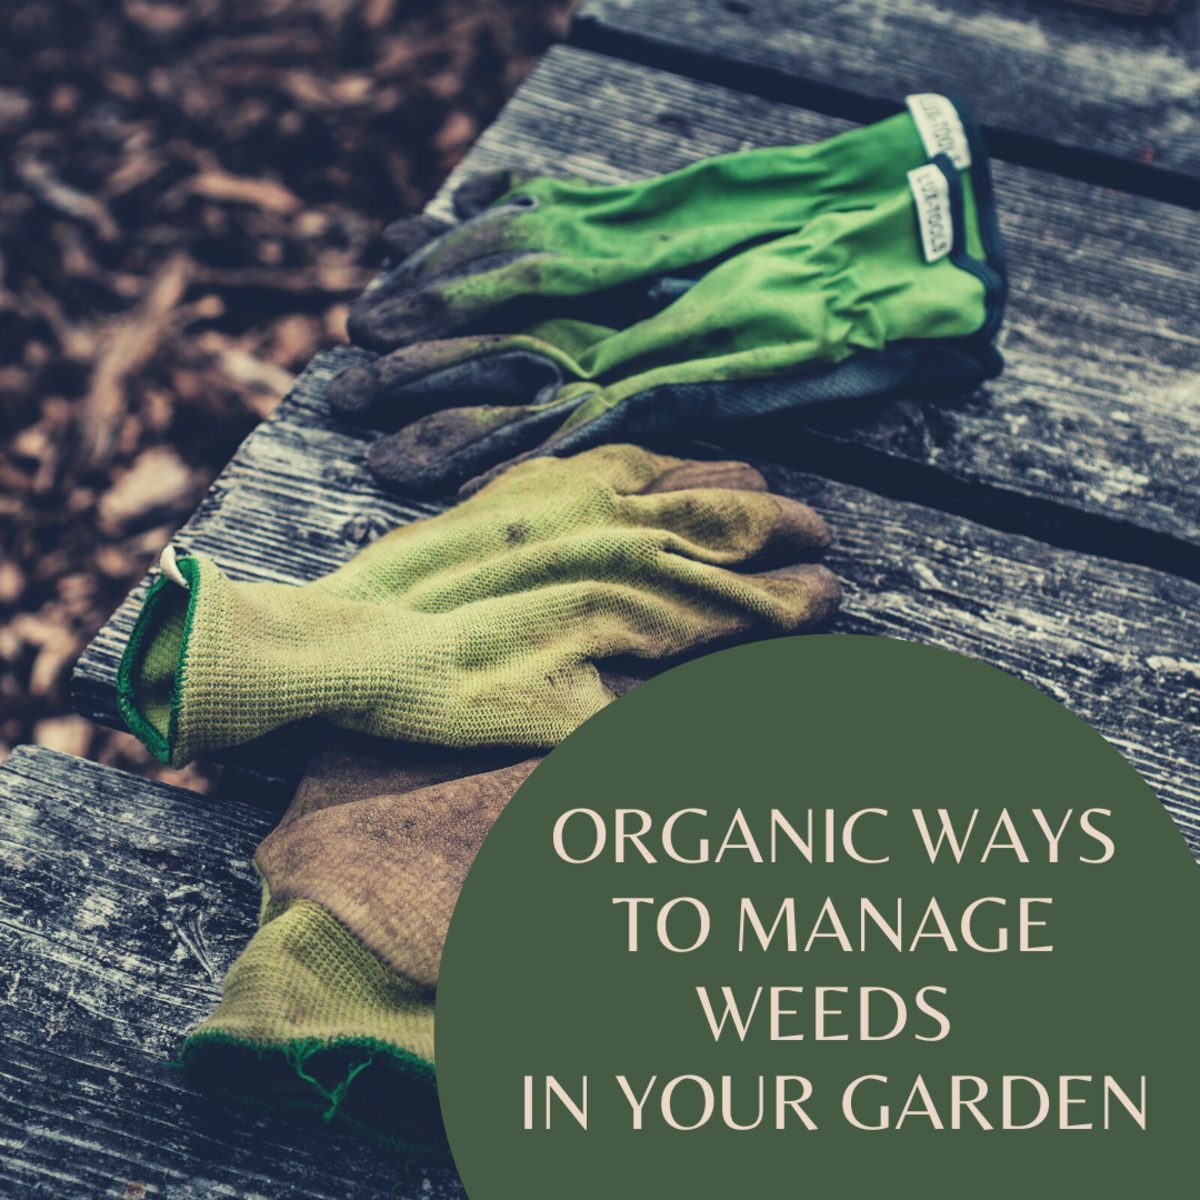 All gardeners at some point will need to decide on a way to control weeds in their garden.